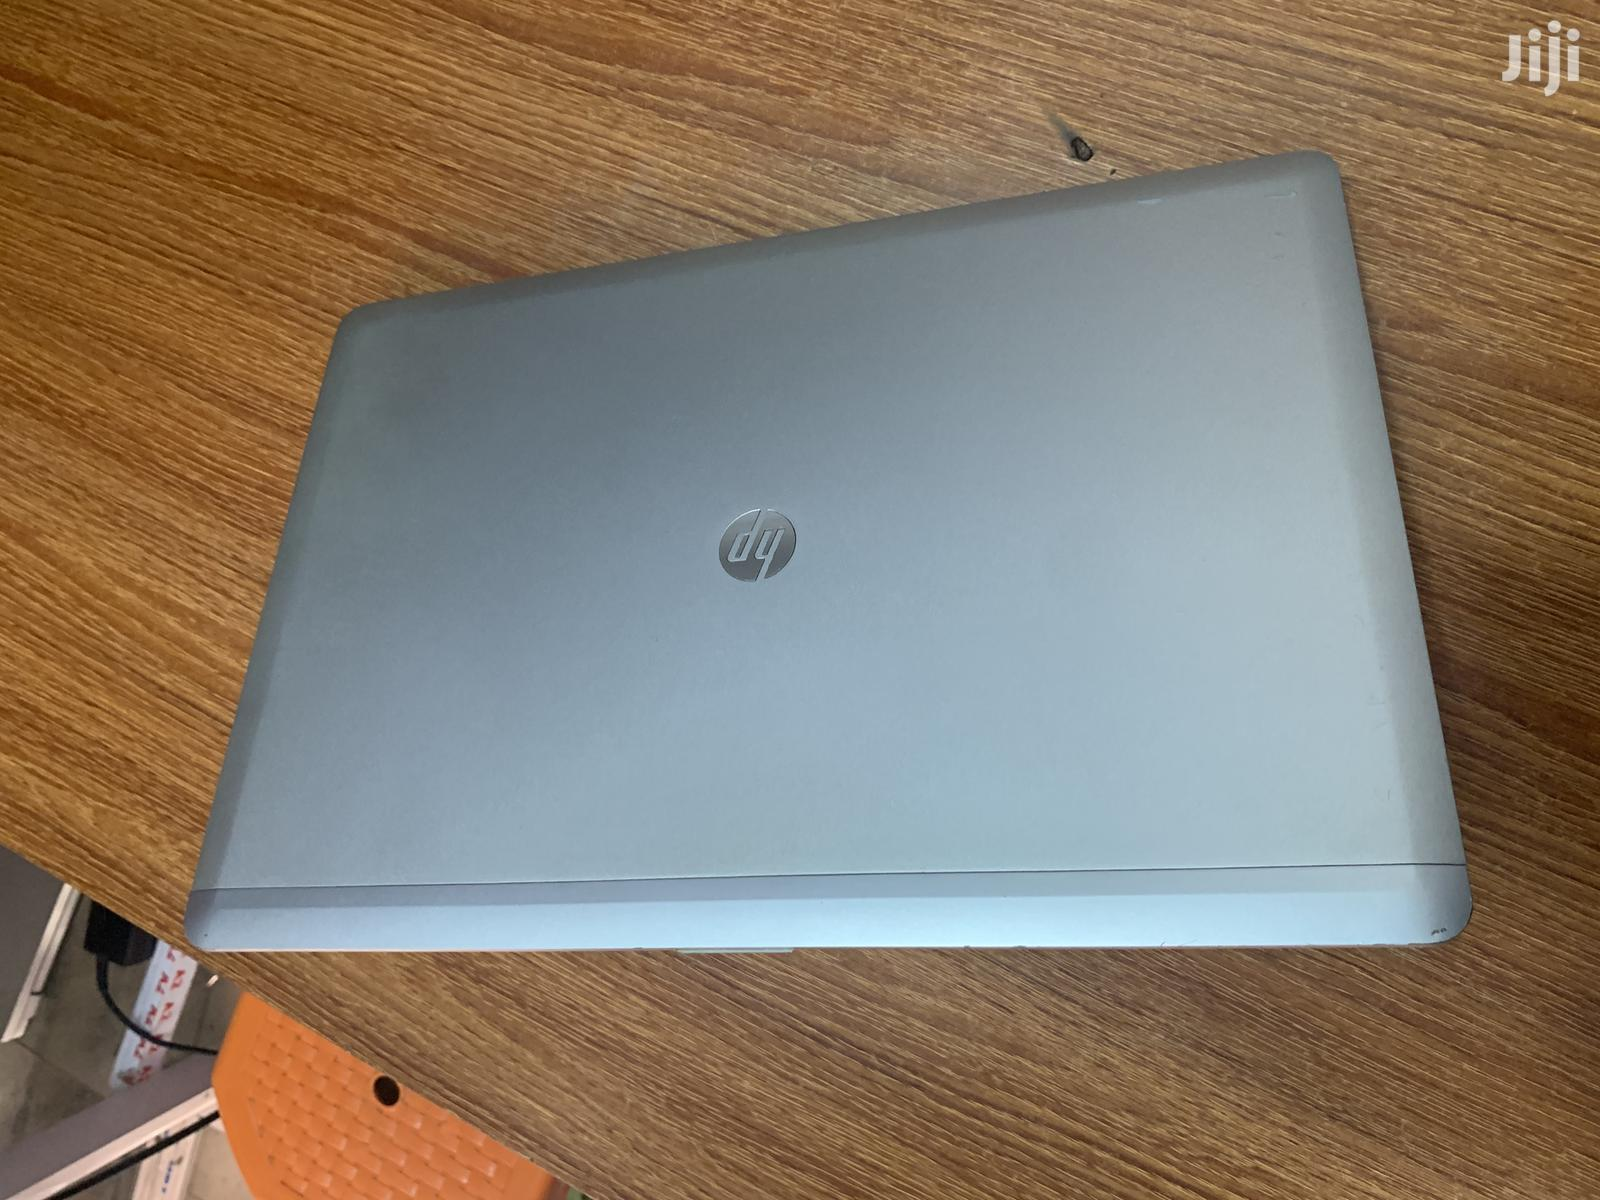 Laptop HP EliteBook Folio 9480M 8GB Intel Core I5 HDD 500GB | Laptops & Computers for sale in Kokomlemle, Greater Accra, Ghana